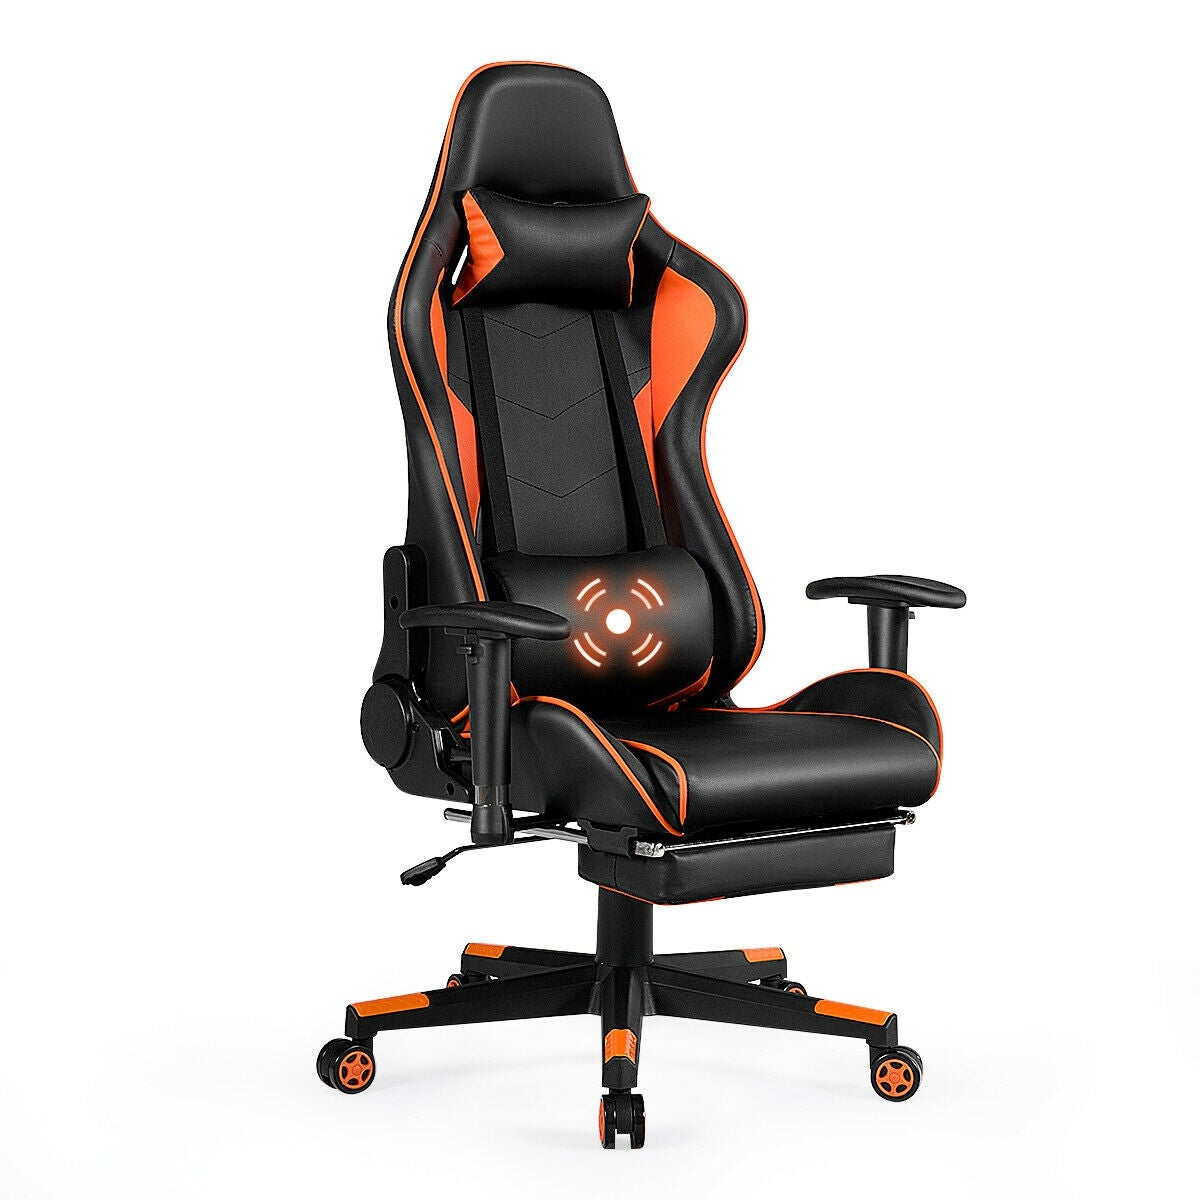 Image of: Orange Lumbar Cushion And Retractable Footrest Gaming Chair Racing Office Chair Computer Desk Chair Executive And Ergonomic Reclining Swivel Chair With Headrest Talkingbread Co Il